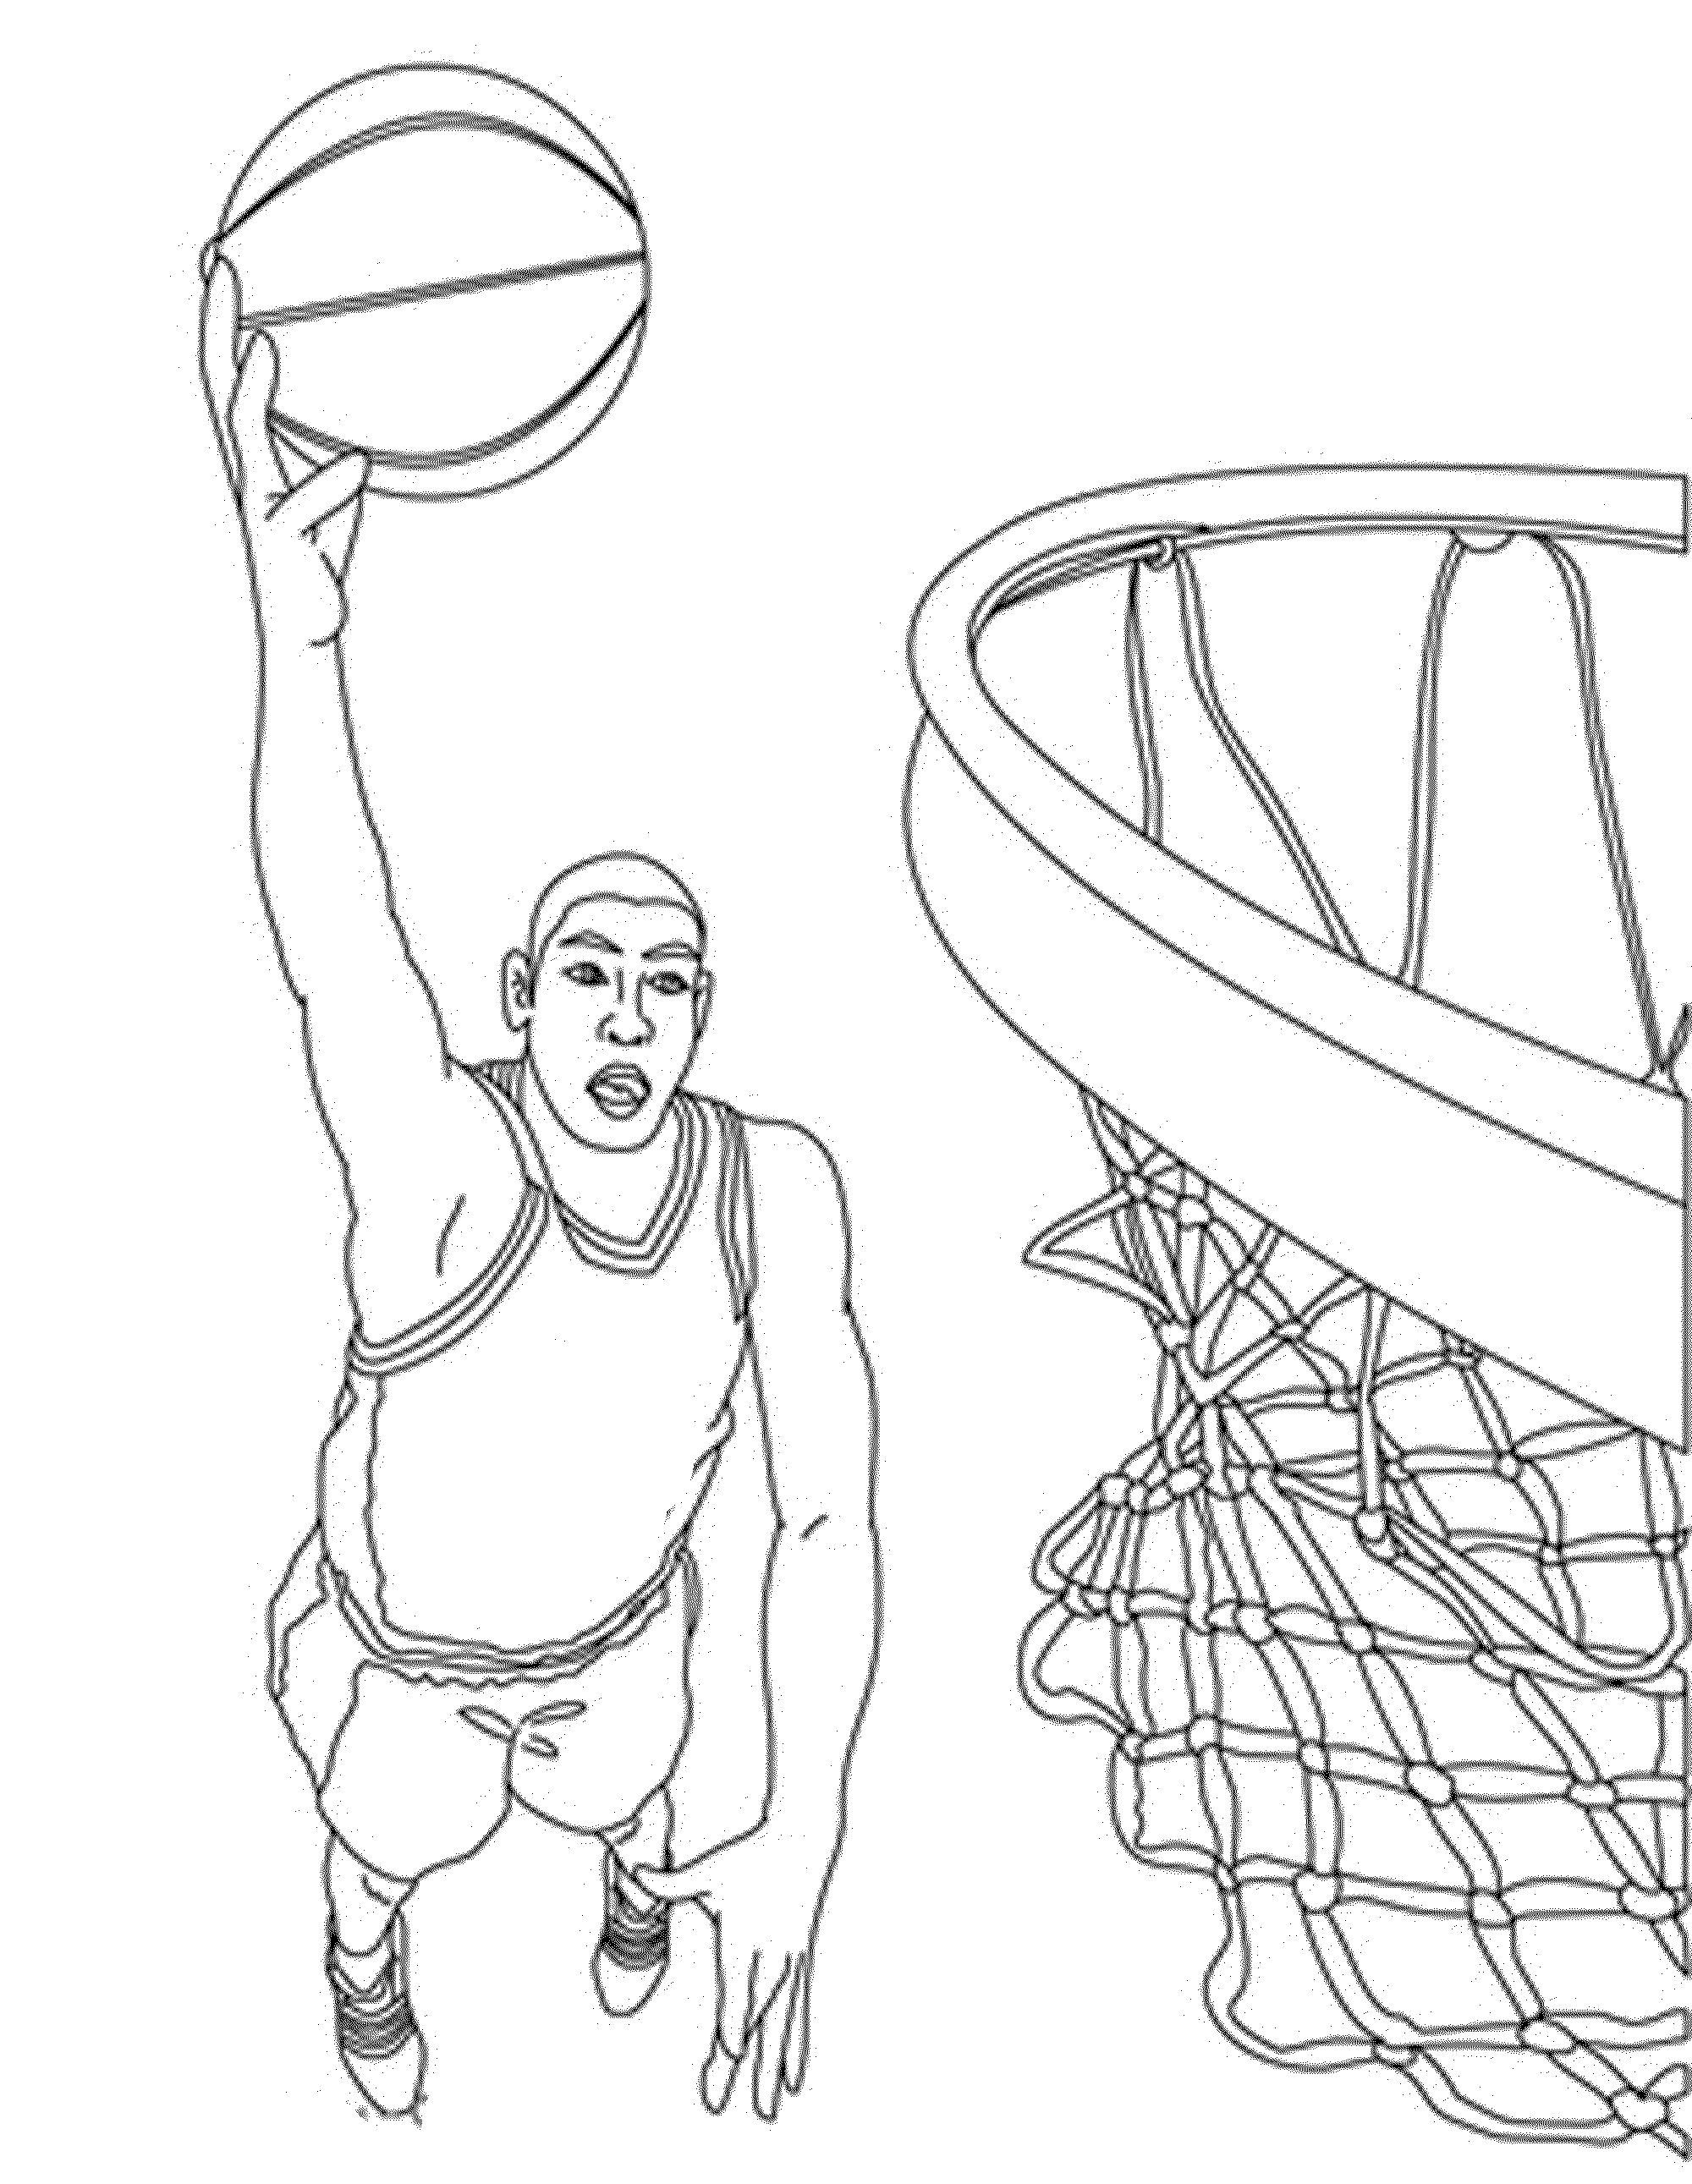 2000x2582 Basketball Hoop Coloring Page Free Download